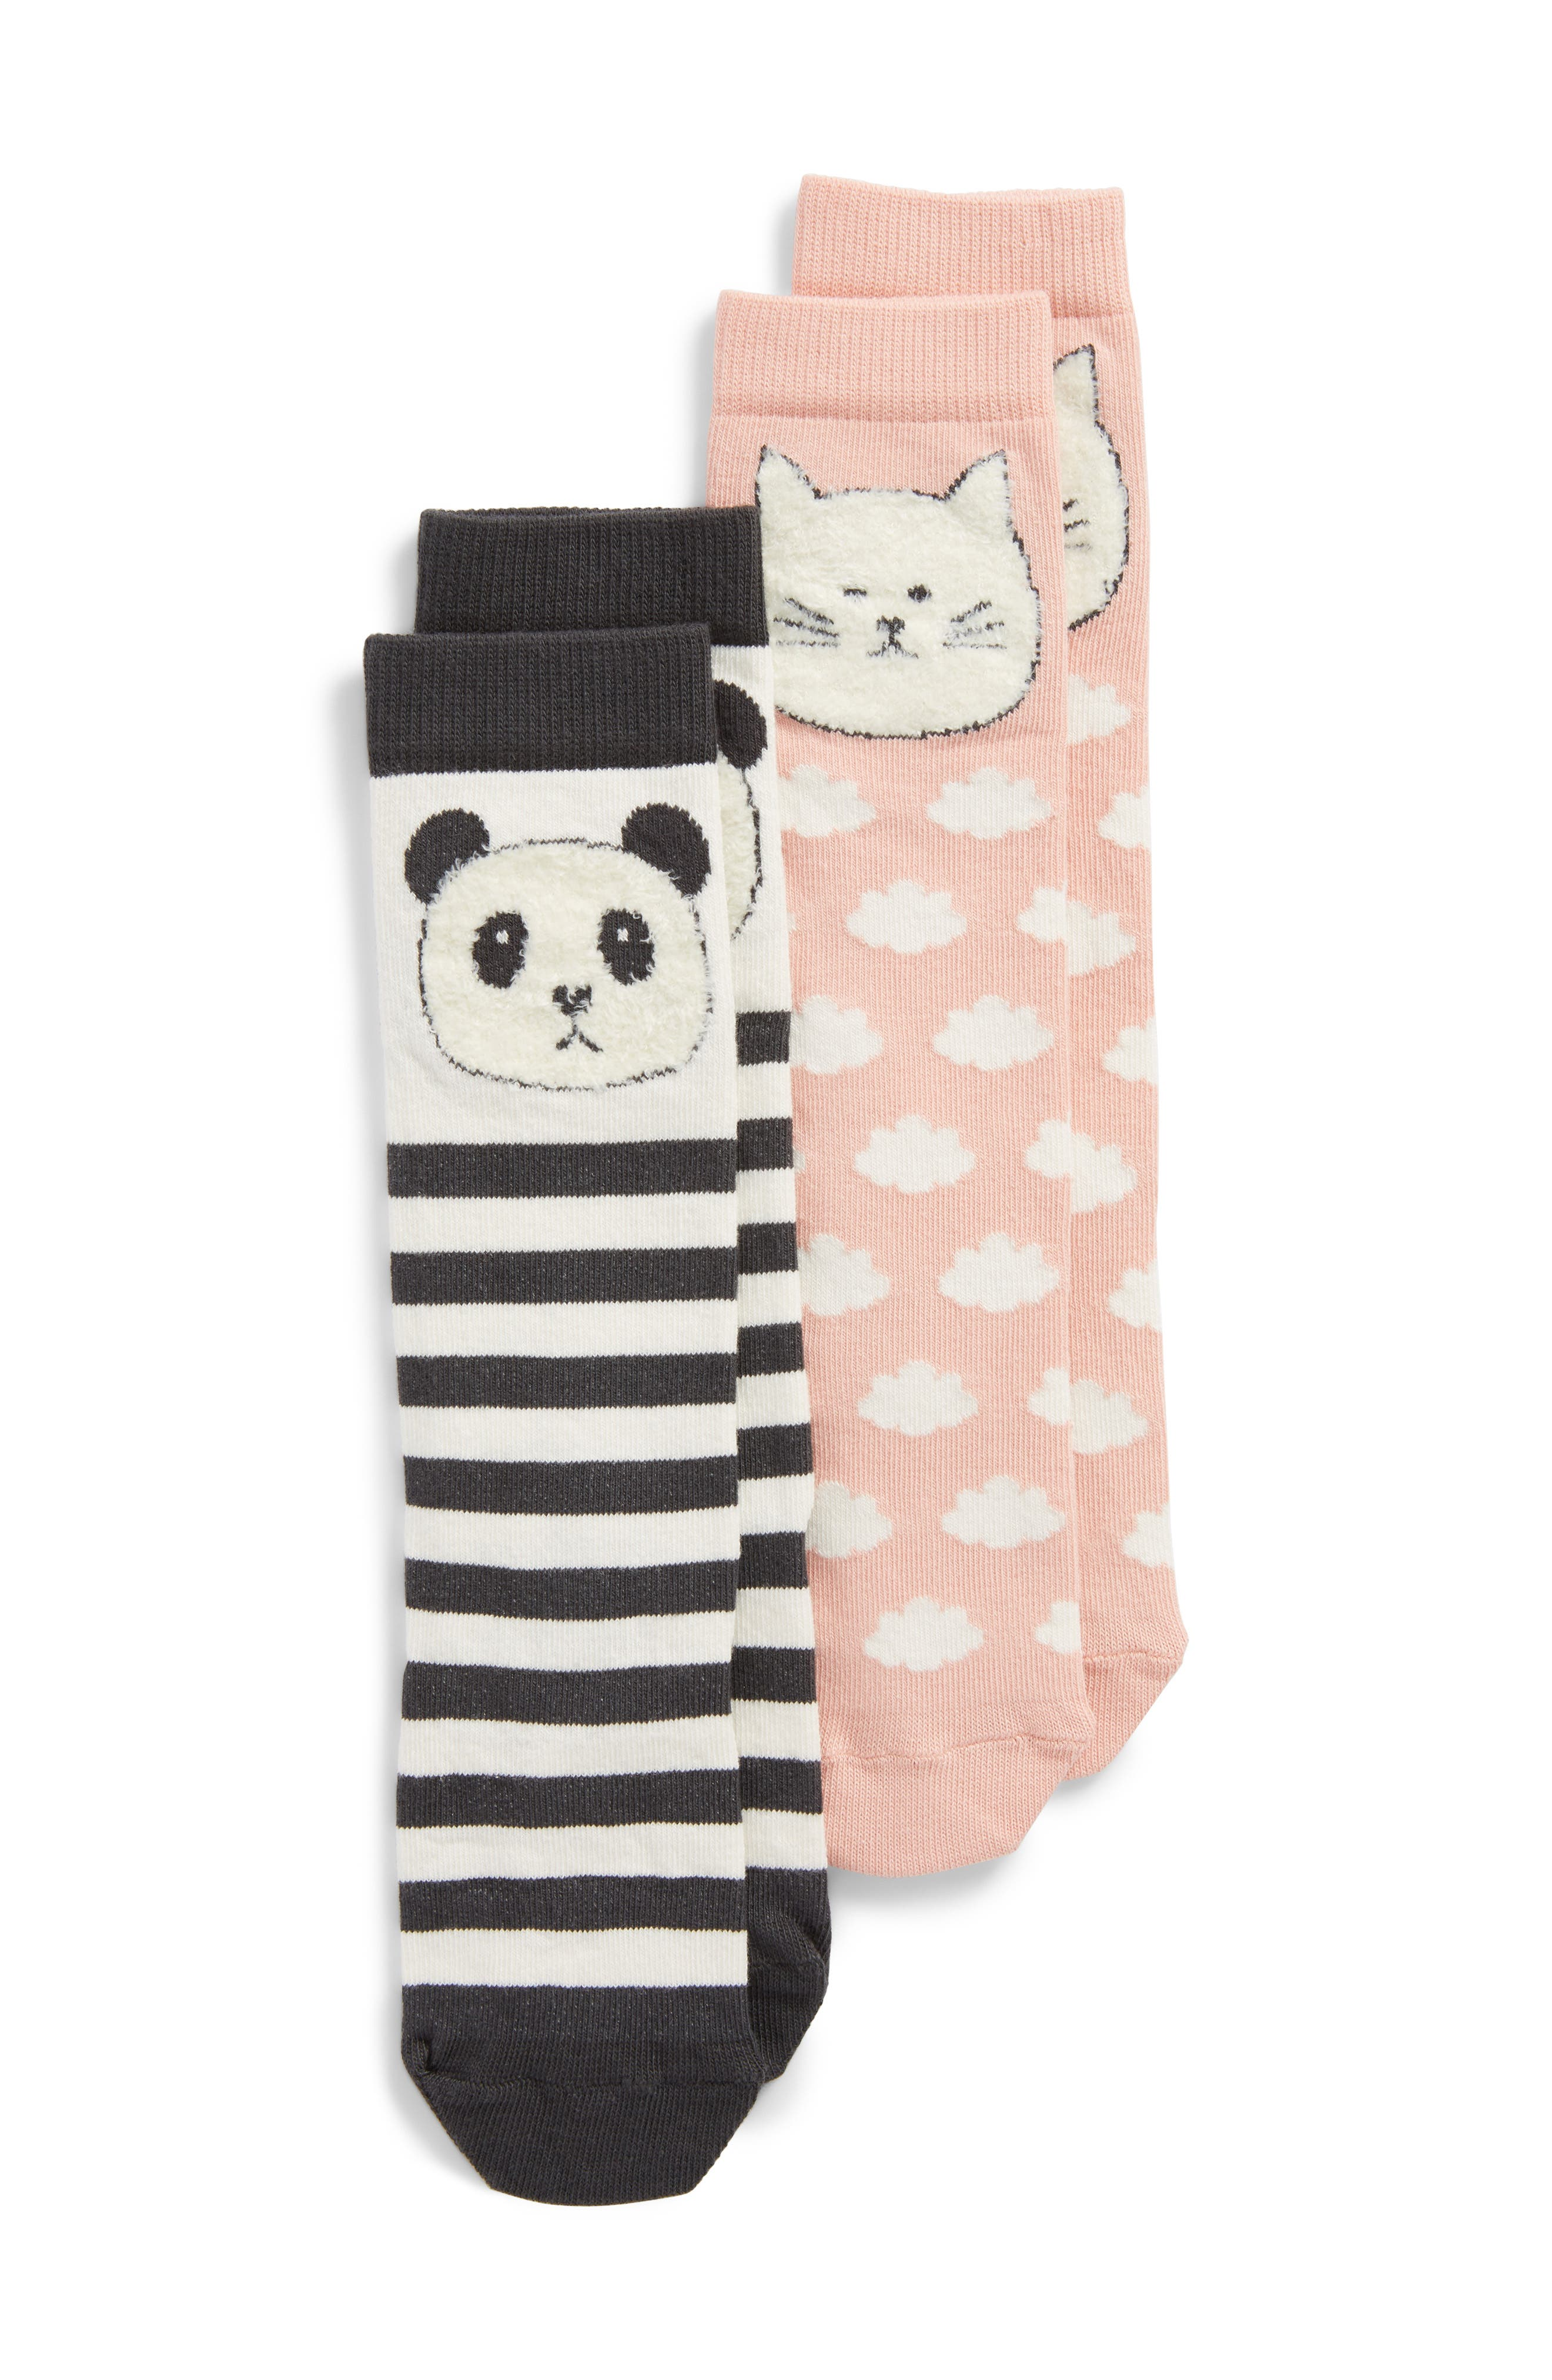 2-Pack Critter Knee Socks,                         Main,                         color, Charcoal Stripe Multi